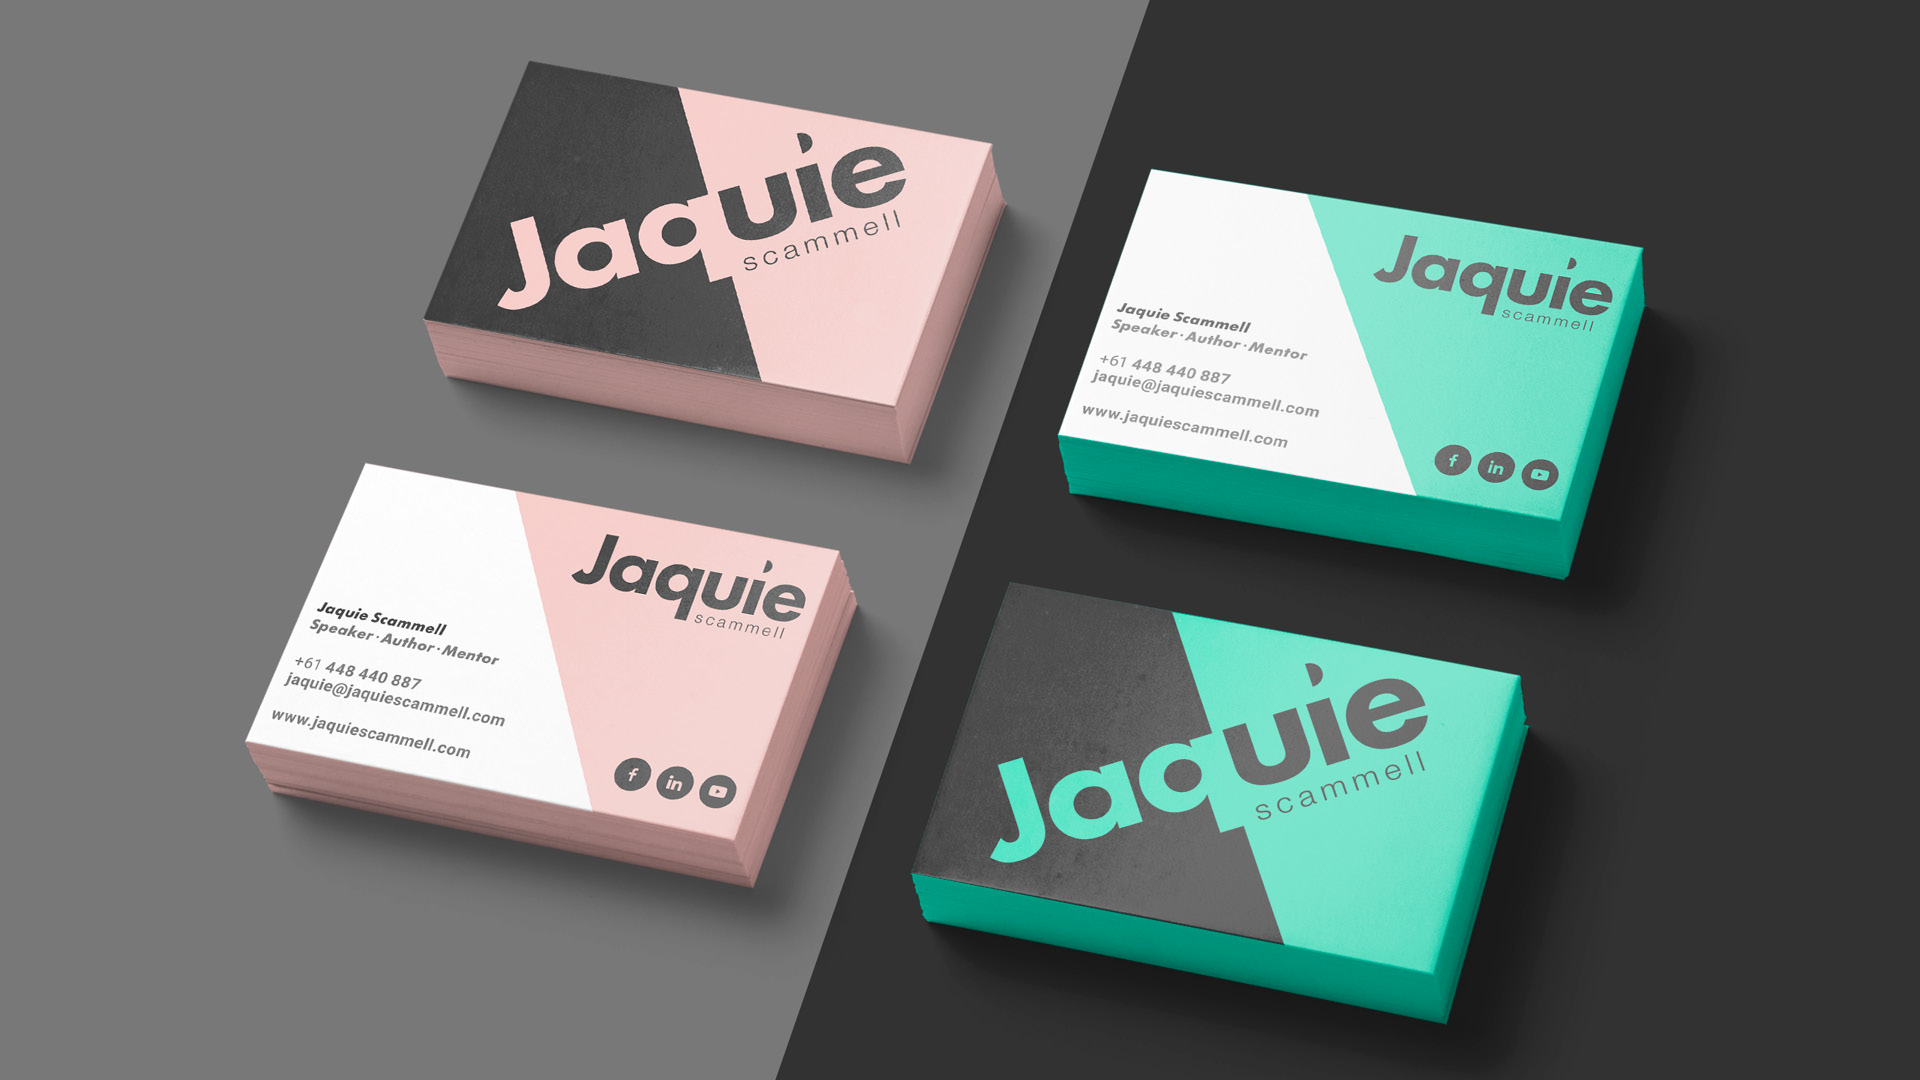 Jaquie Scammell Project Images1